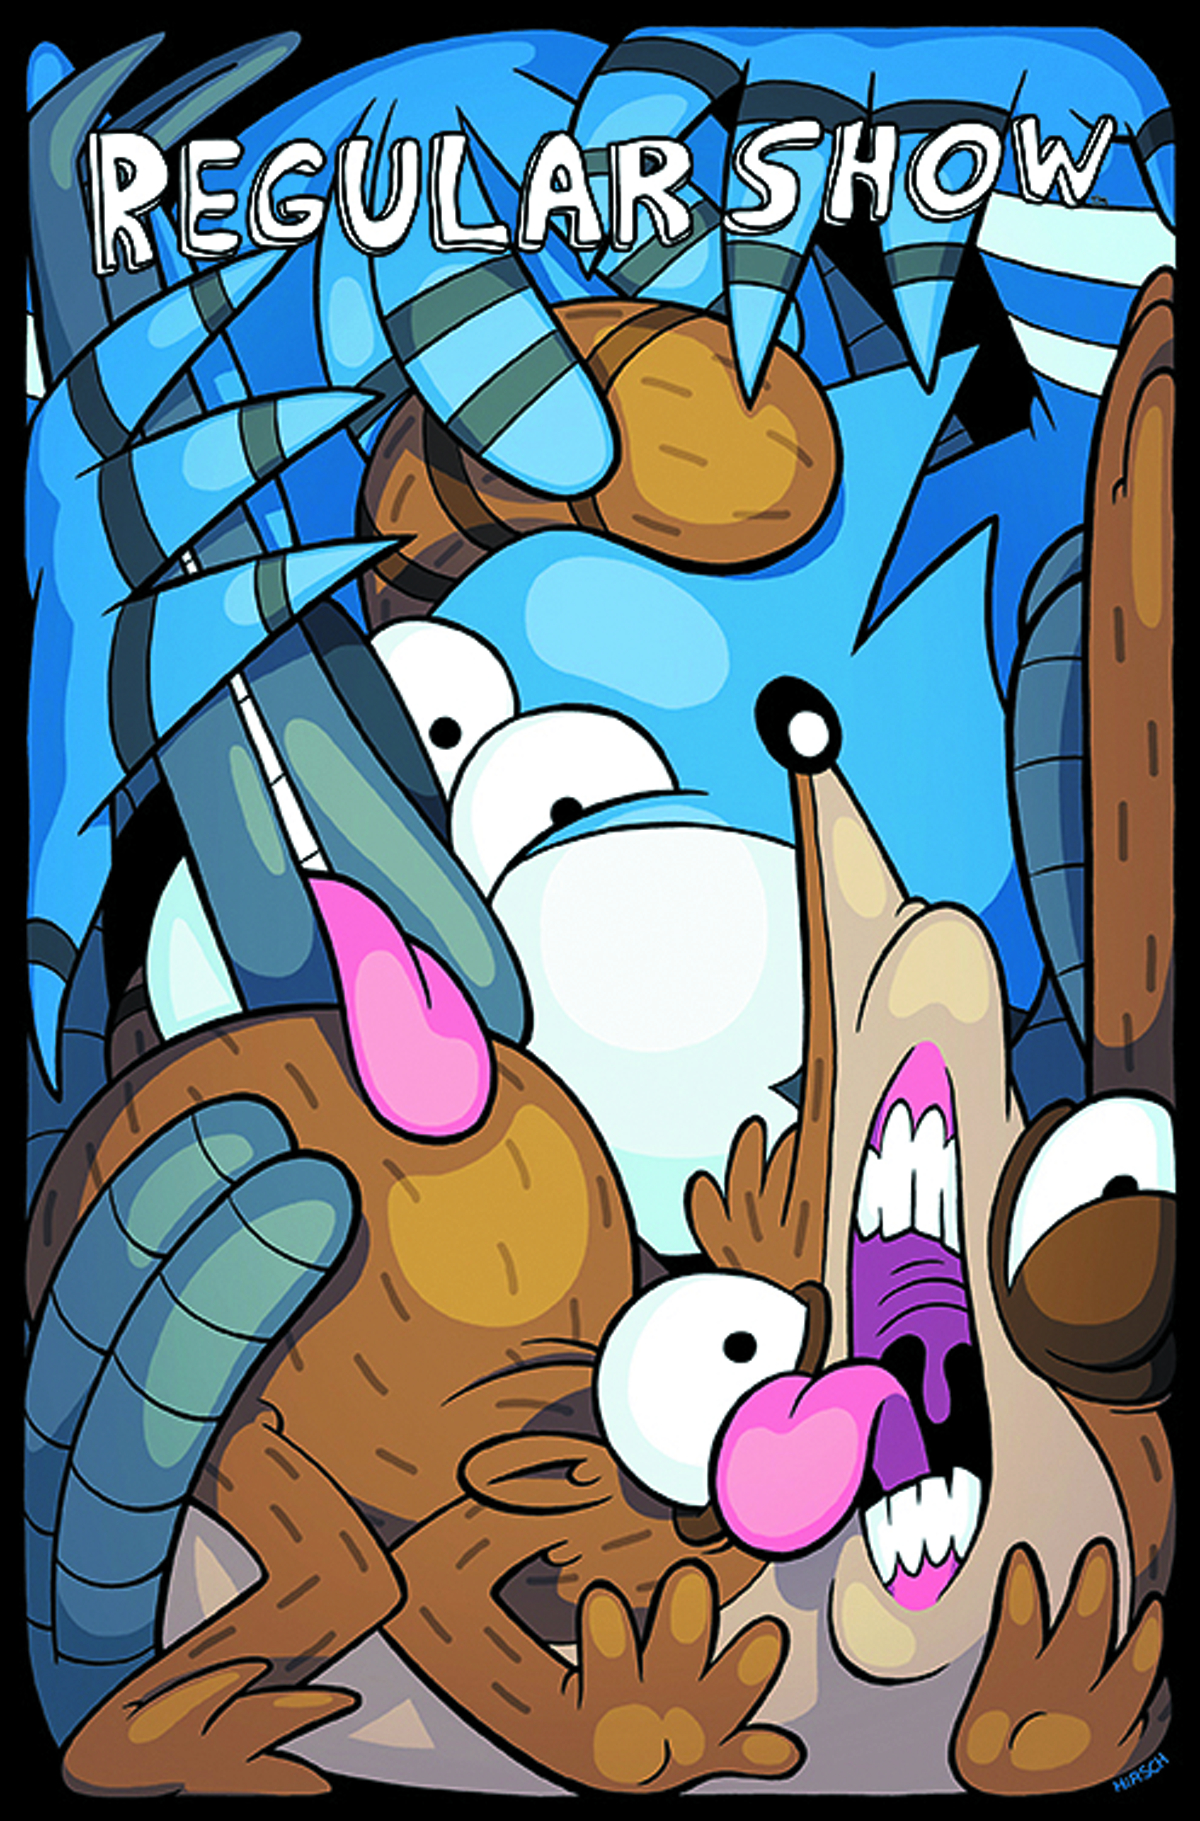 REGULAR SHOW #10 MAIN CVRS